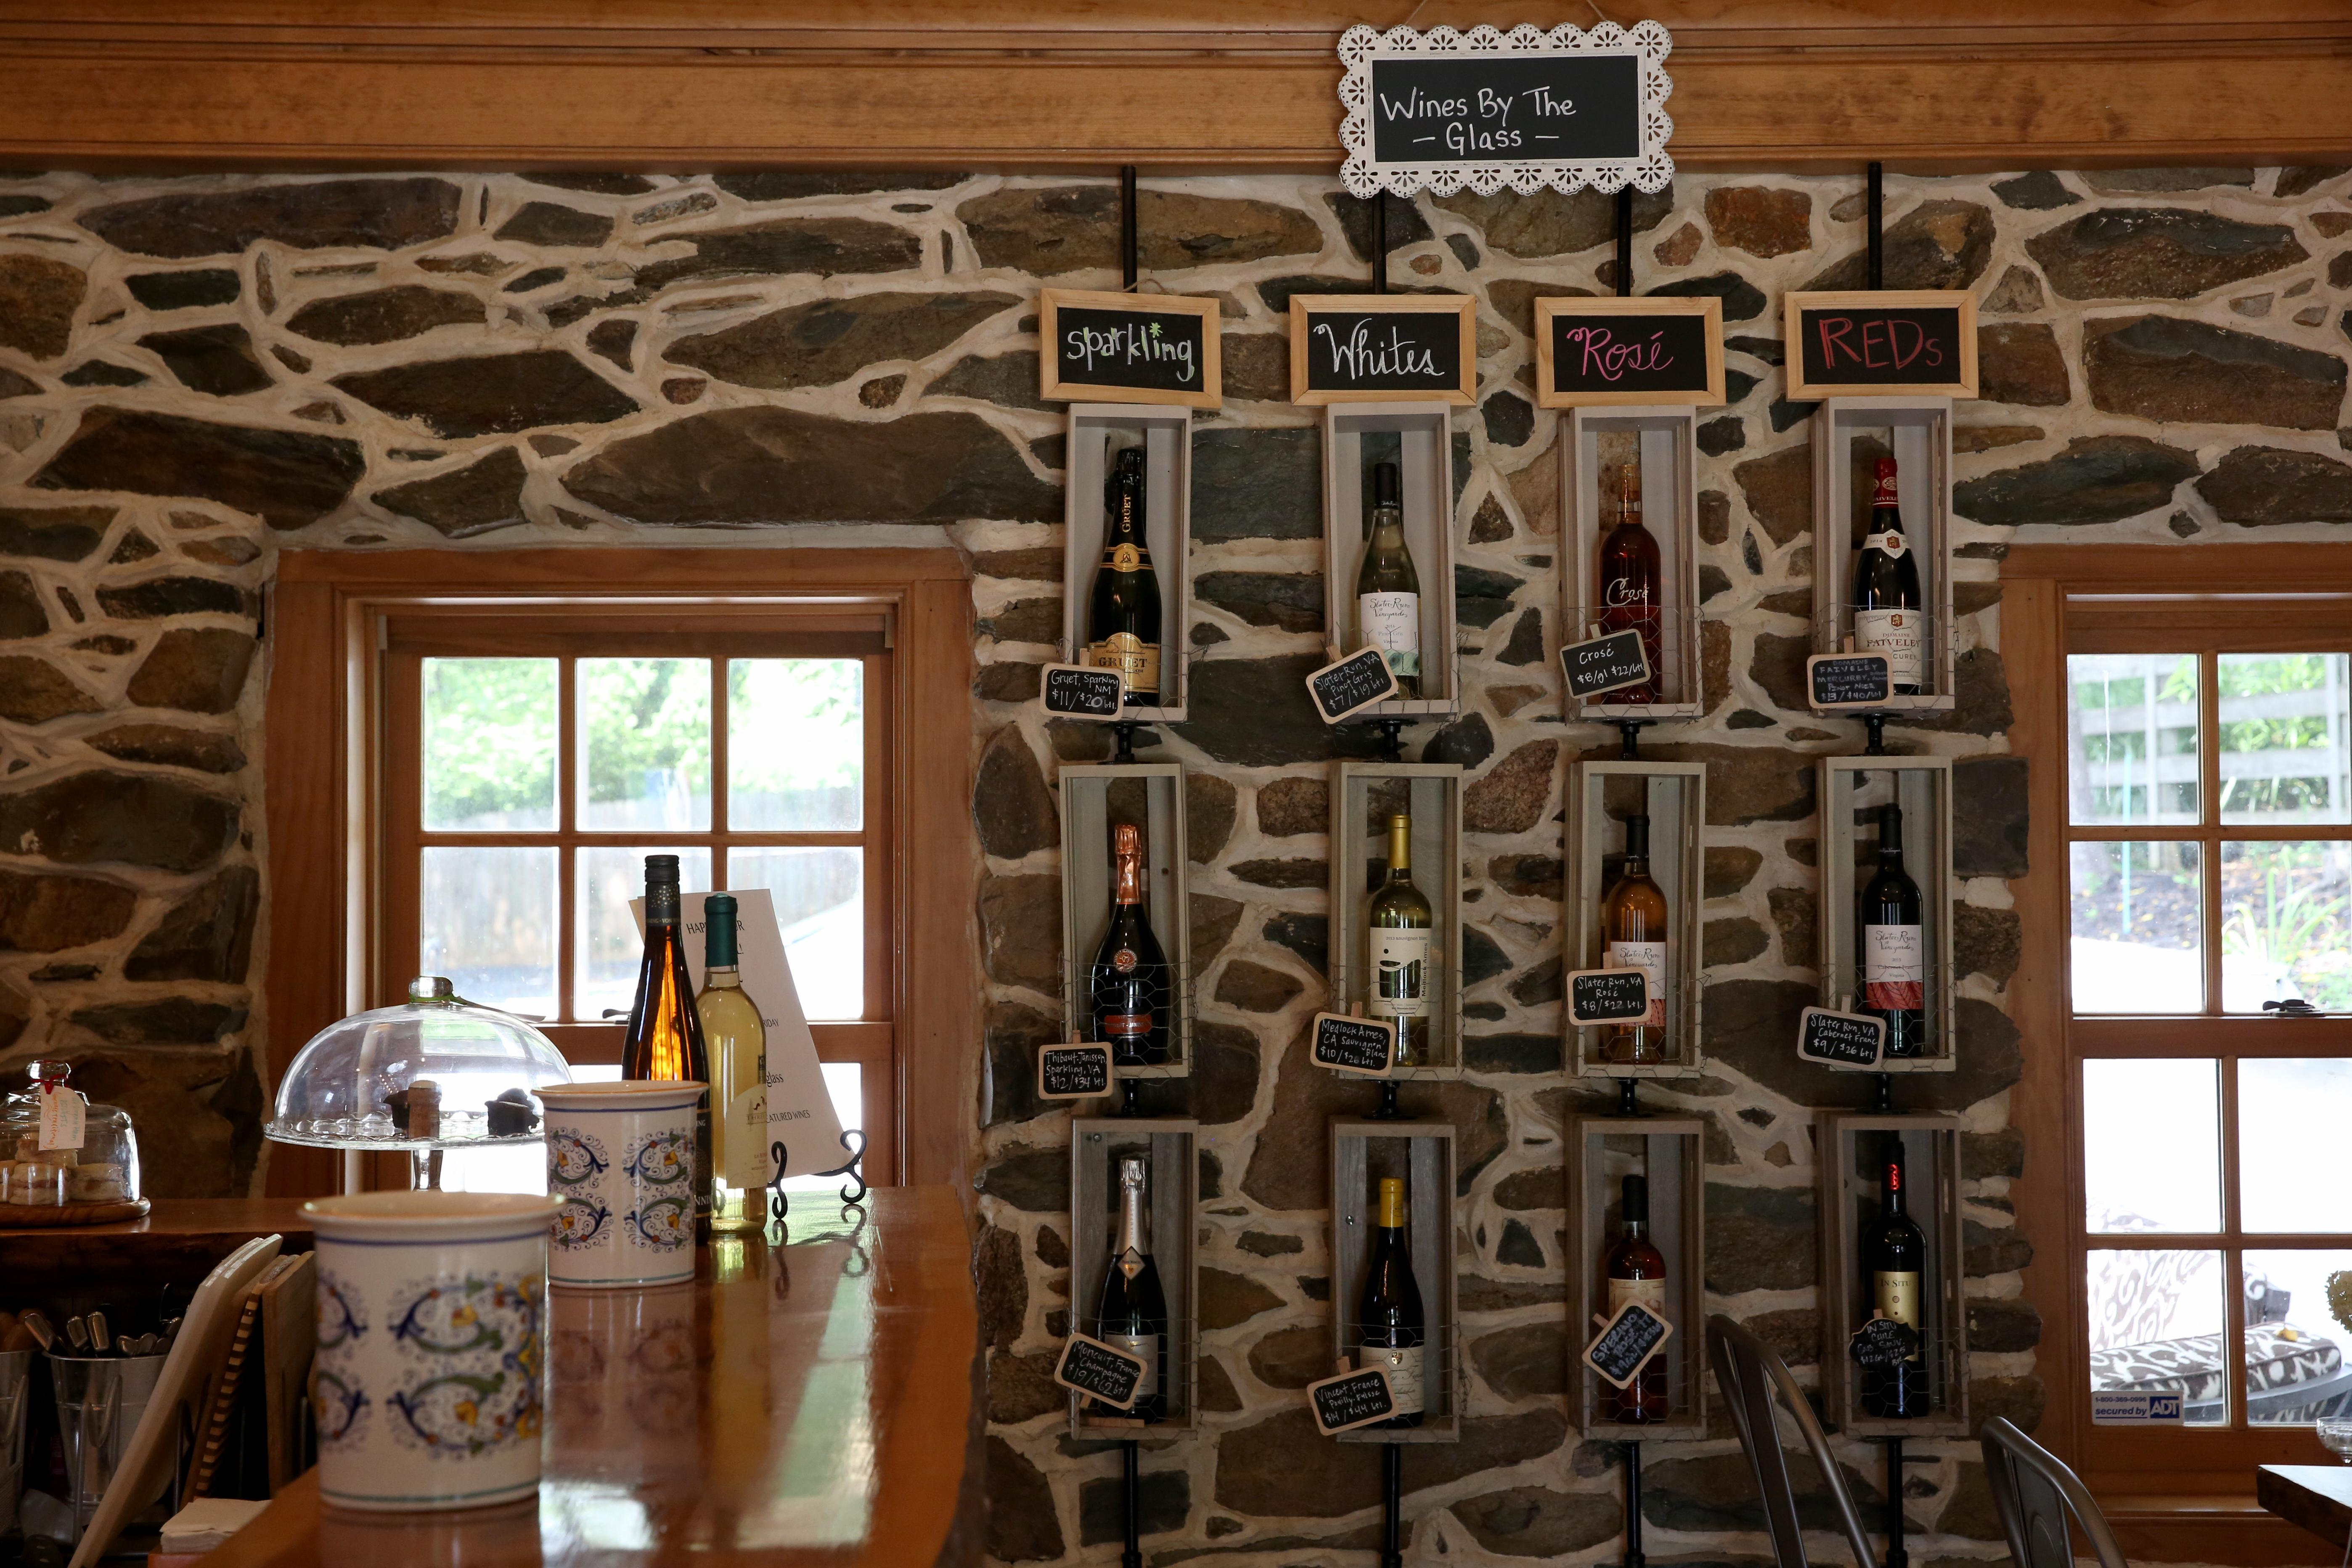 Slater Run Vineyards has only been around for three years, but it has an intimate tasting room in the heart of town. Their wine called 'Roots' has won awards, but many of their wines come from an old-world background. (Amanda Andrade-Rhoades/DC Refined)